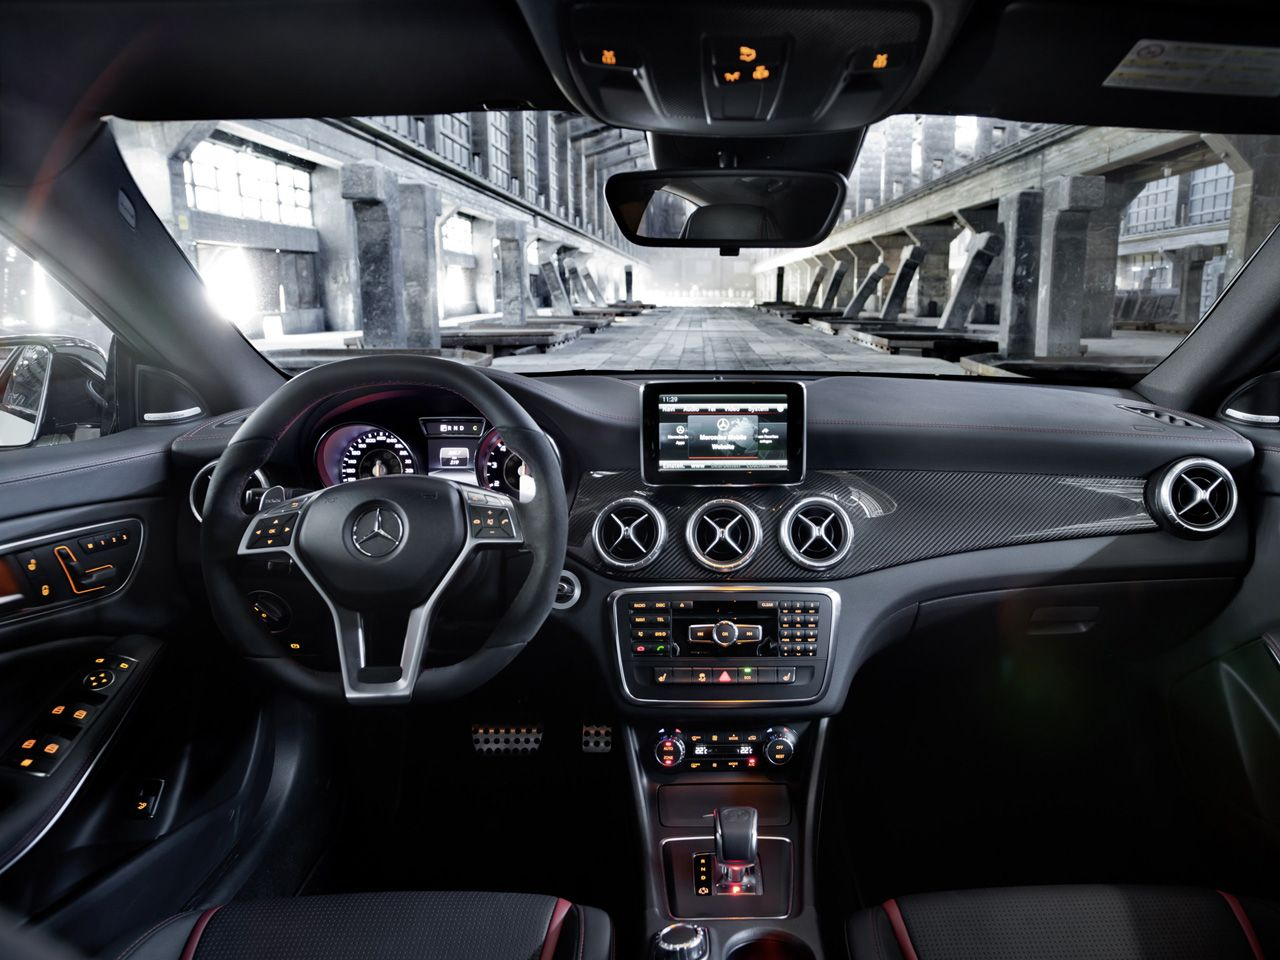 Mercedes Benz CLA 2013 Interior | 2013 Mercedes Benz CLA 45 AMG   Interior  1   1280x960   Wallpaper